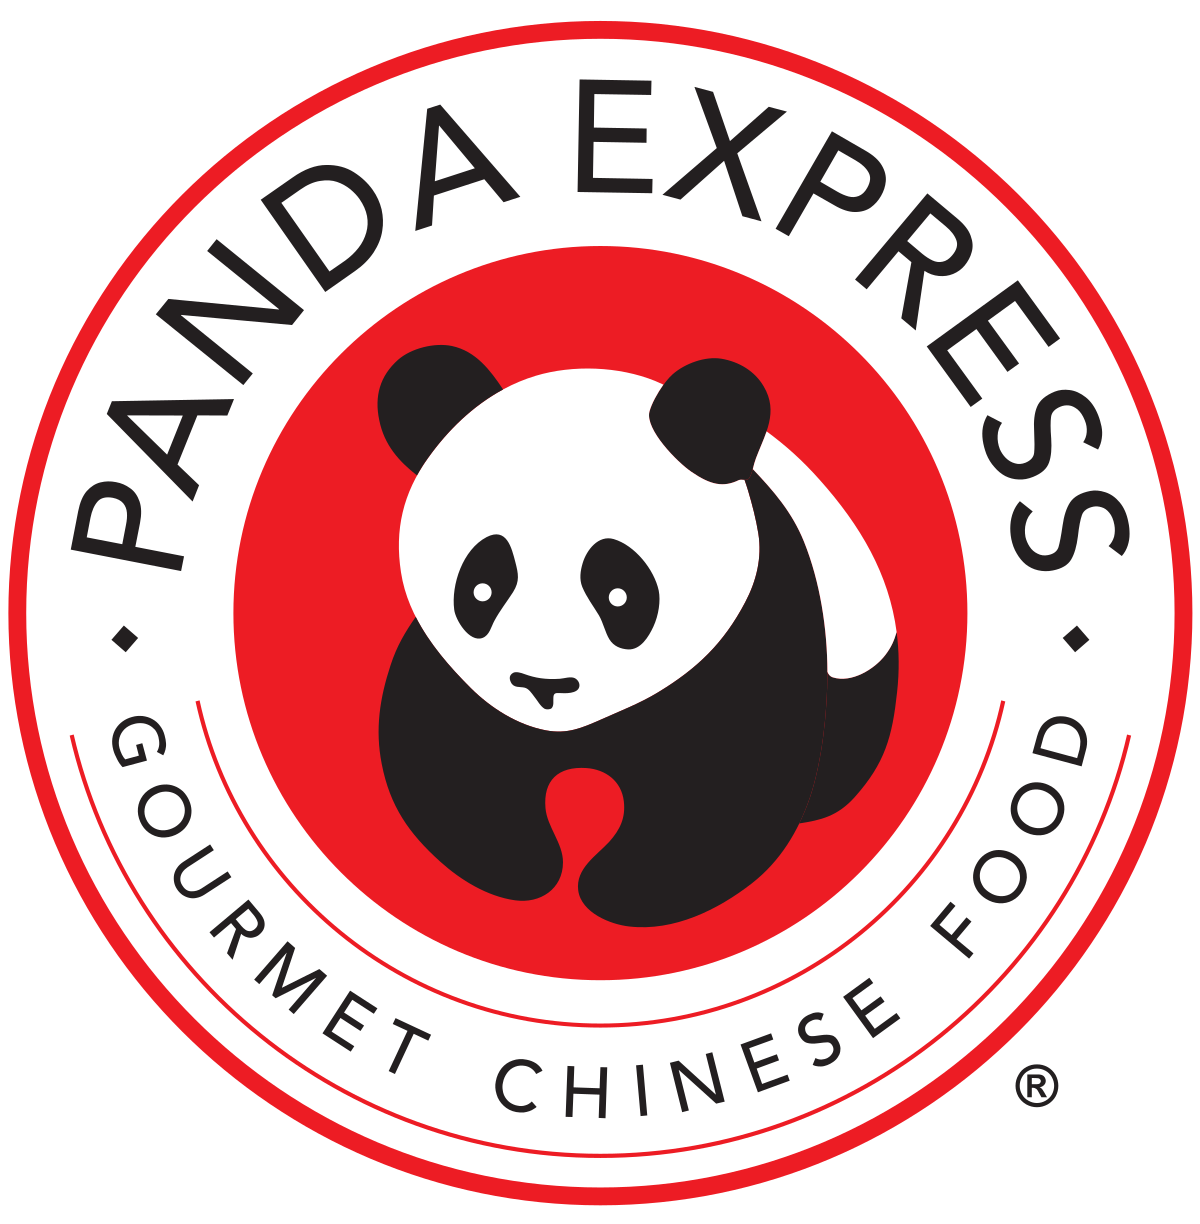 Restaurants clipart master chef. Panda restaurant group wikipedia